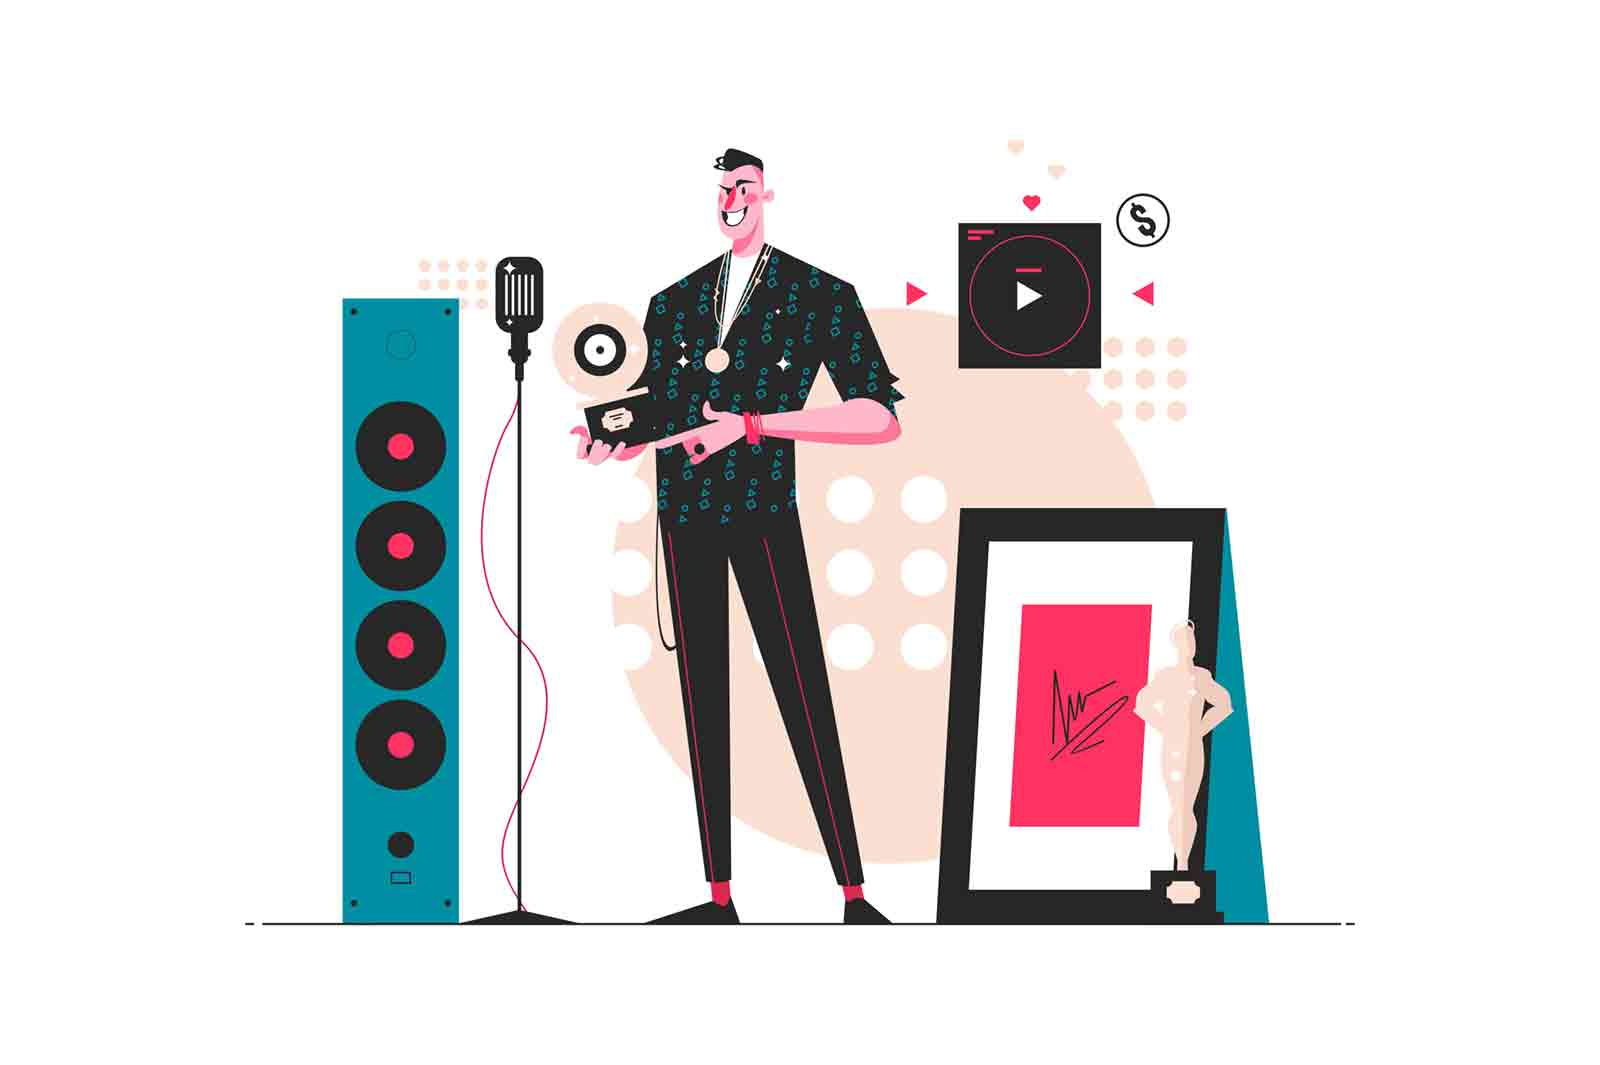 Music star reward vector illustration. Man stands in festive hall with prize won flat style design. Art, cinema concept. Isolated on white background